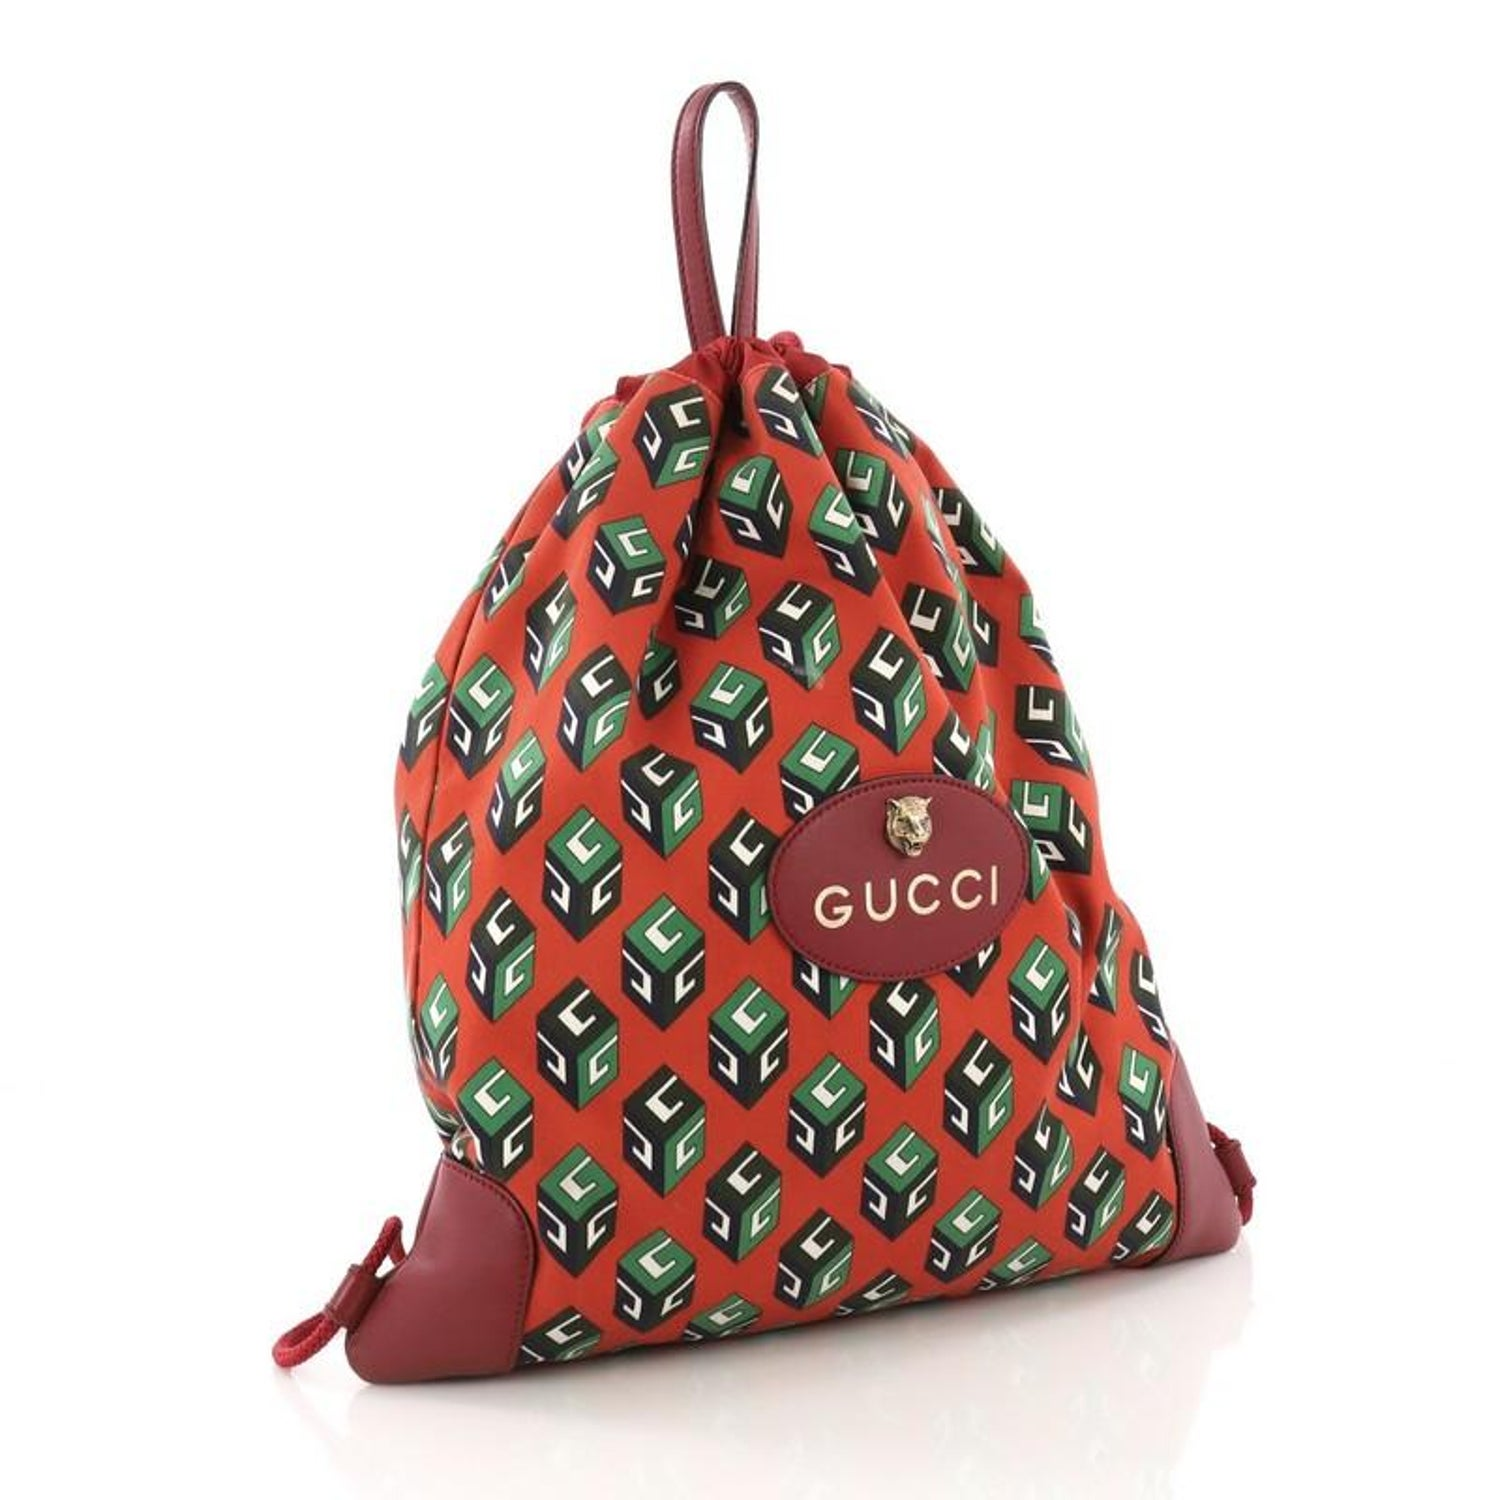 aef9292d8240 Gucci Animalier Drawstring Backpack Printed Canvas Large at 1stdibs